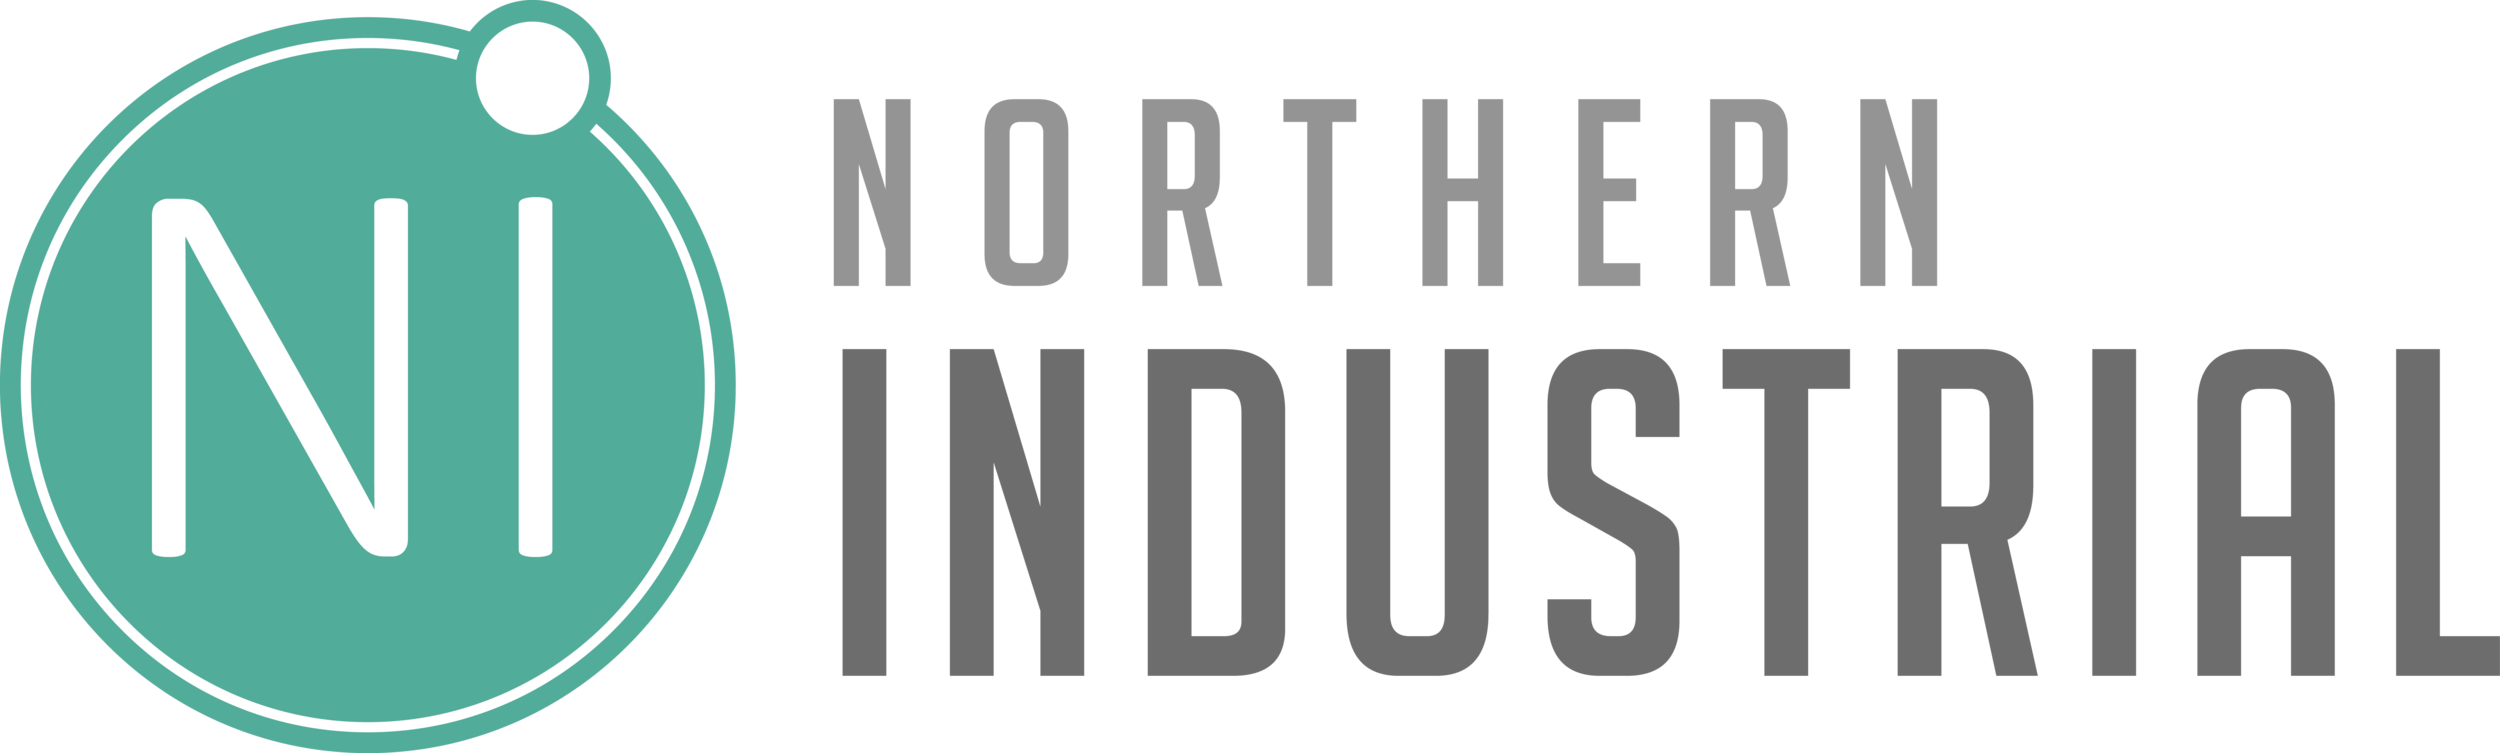 Northern Industrial.png